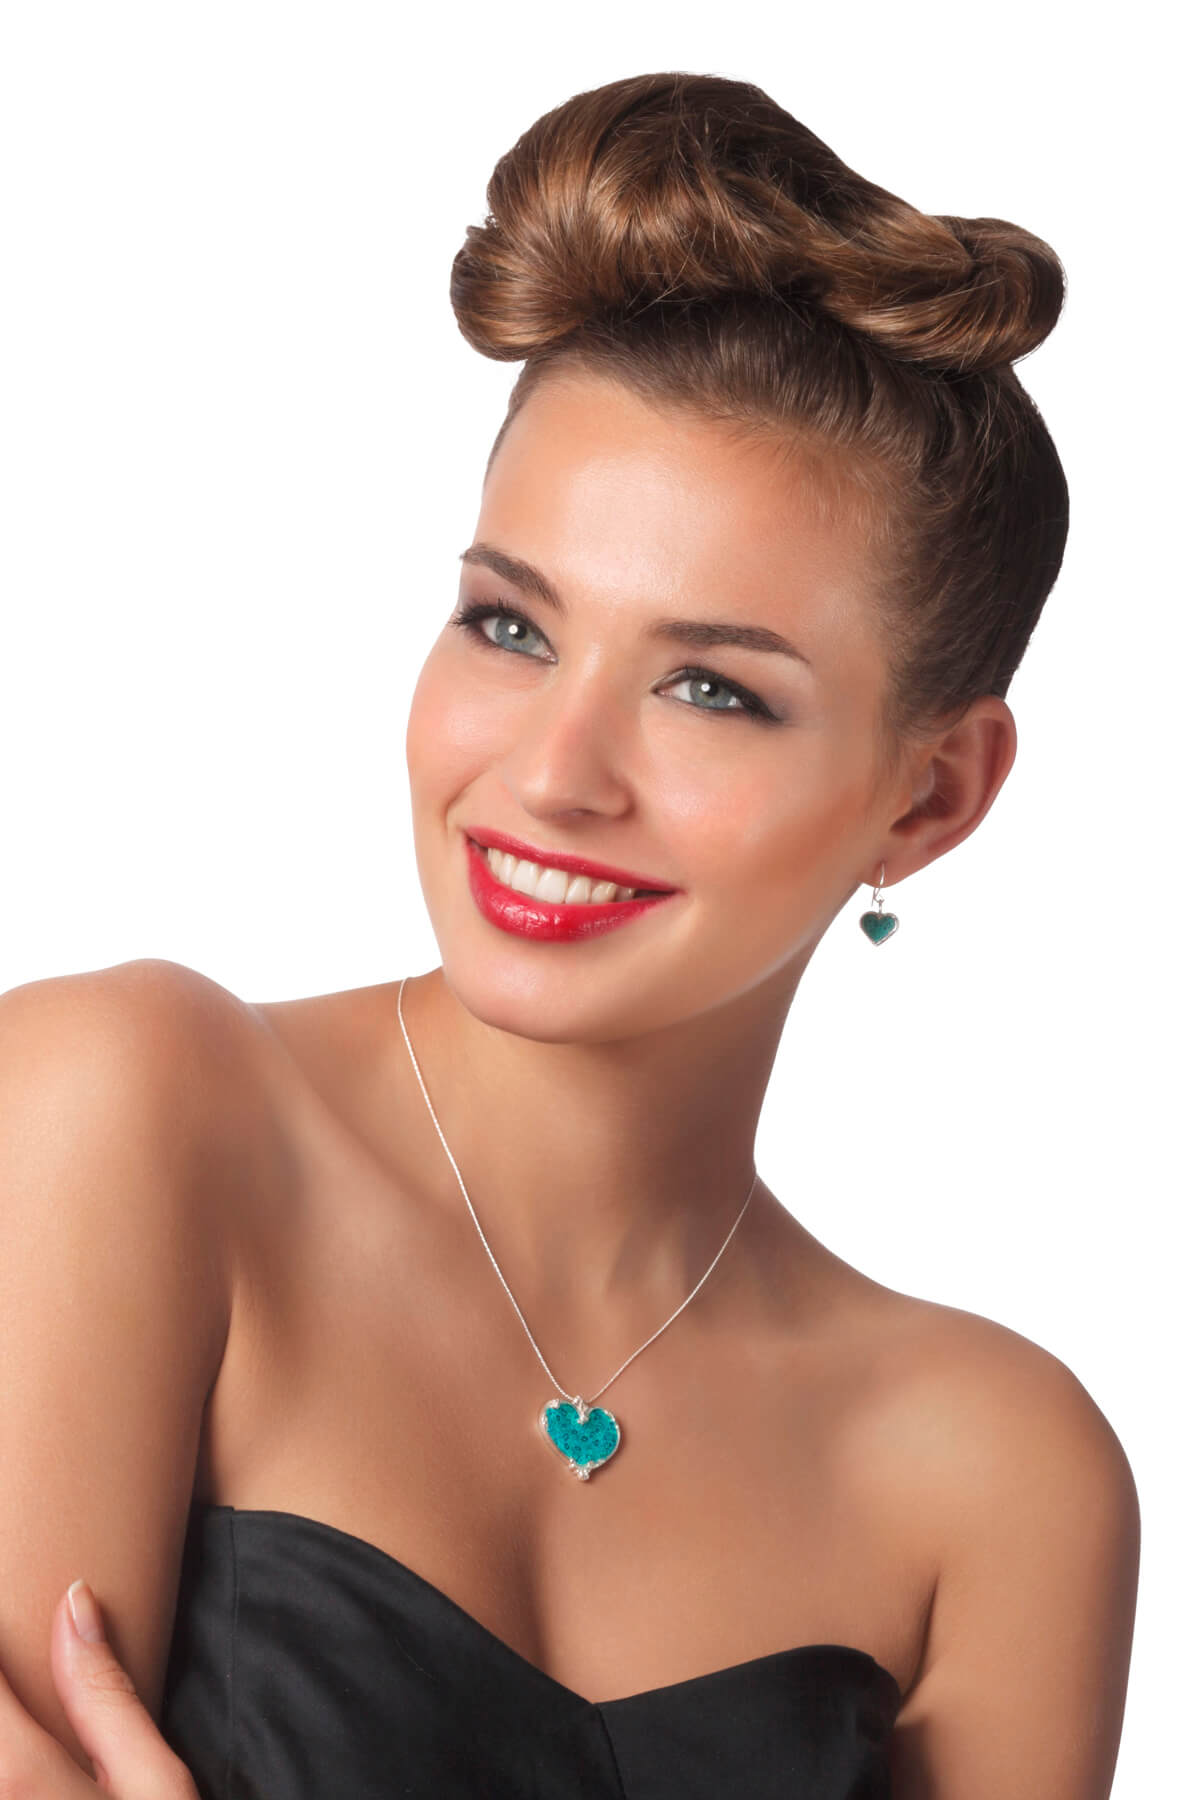 Handmade Silver Heart Art Nuvo Necklace & earrings  – Turquoise Pattern